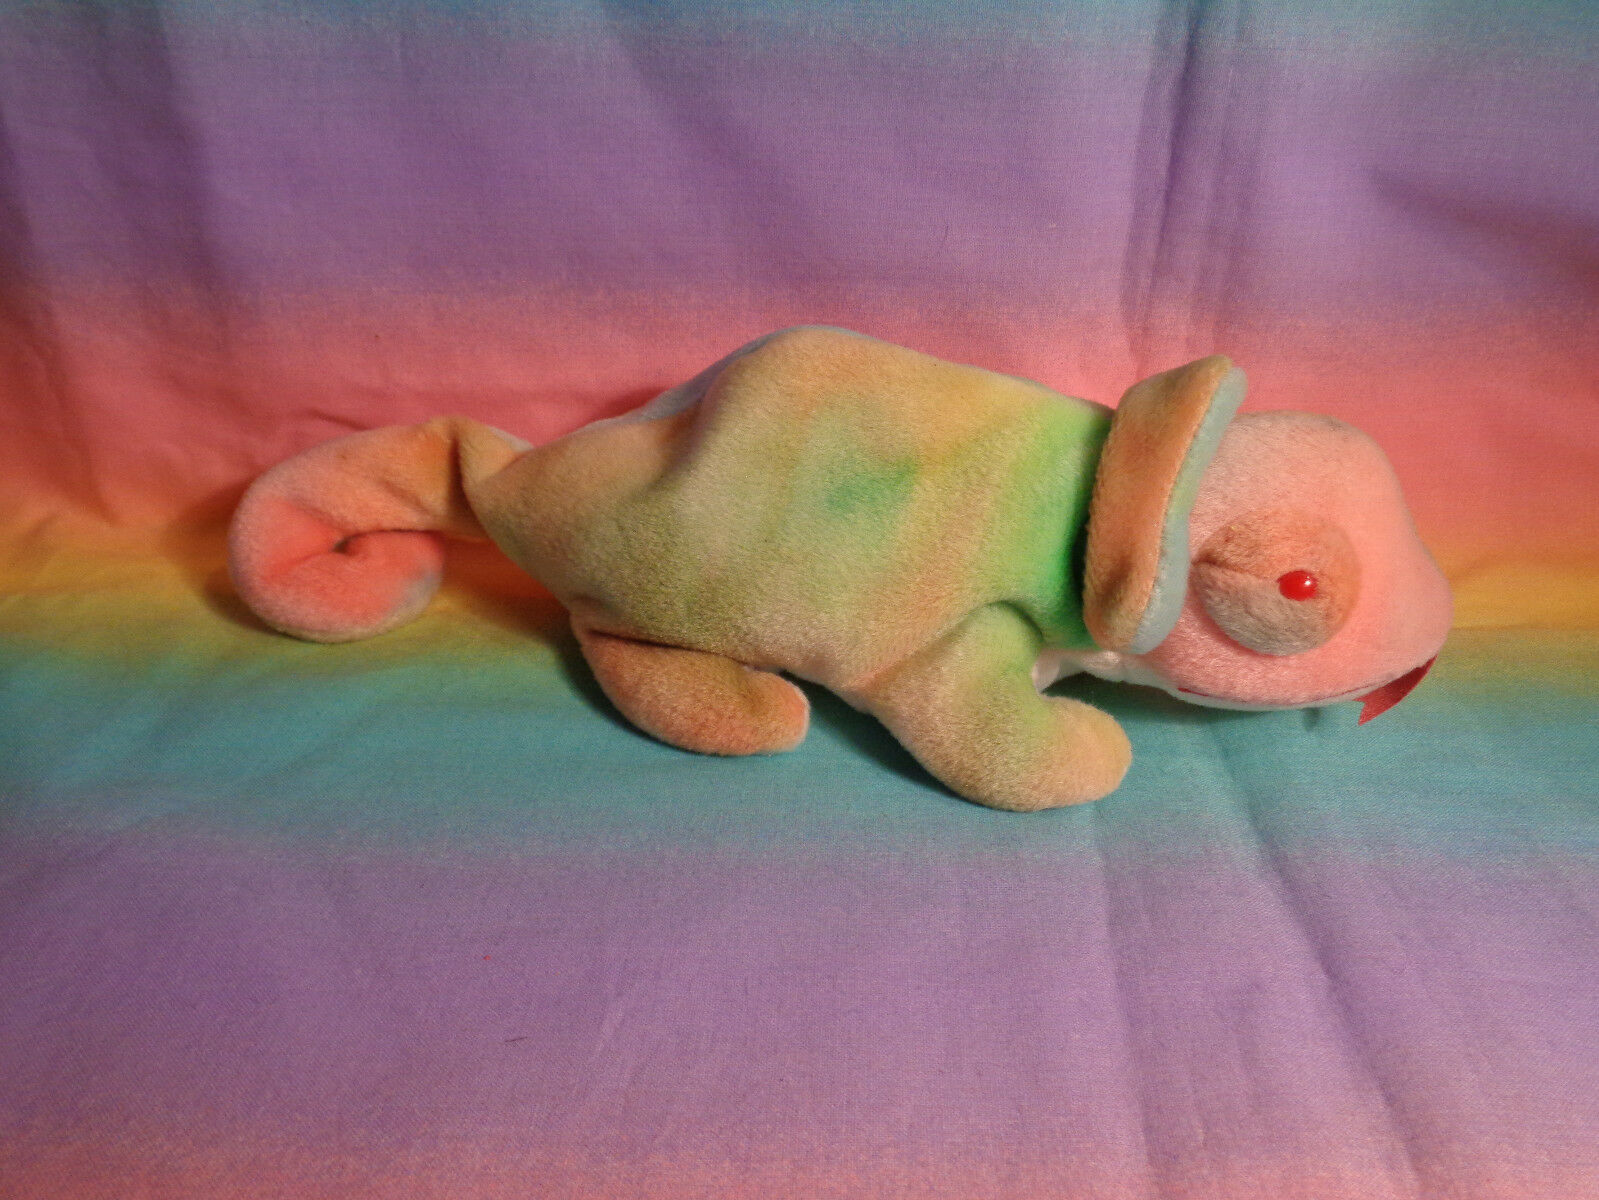 Vintage 1997 Ty Beanie Baby Rainbow Chameleon Bean Bag Plush w/ Tags - as is